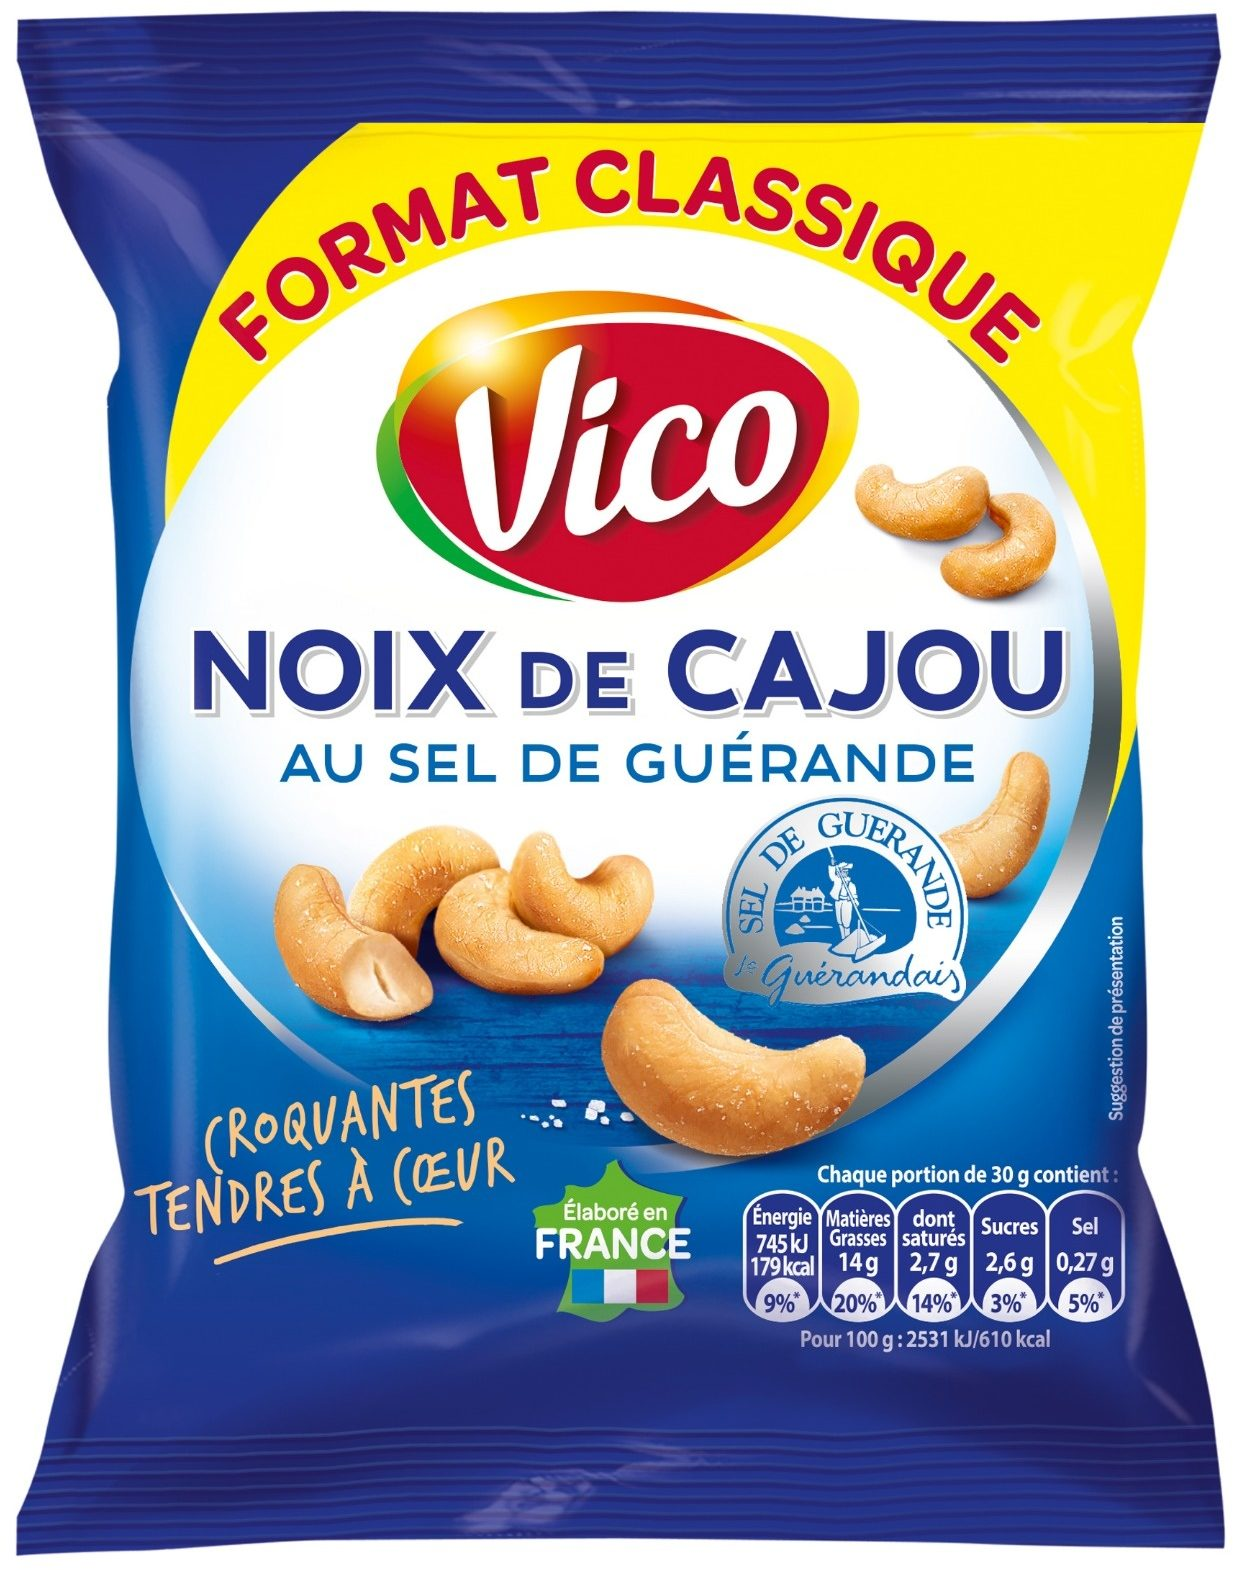 Noix de cajou tendres à coeur - Product